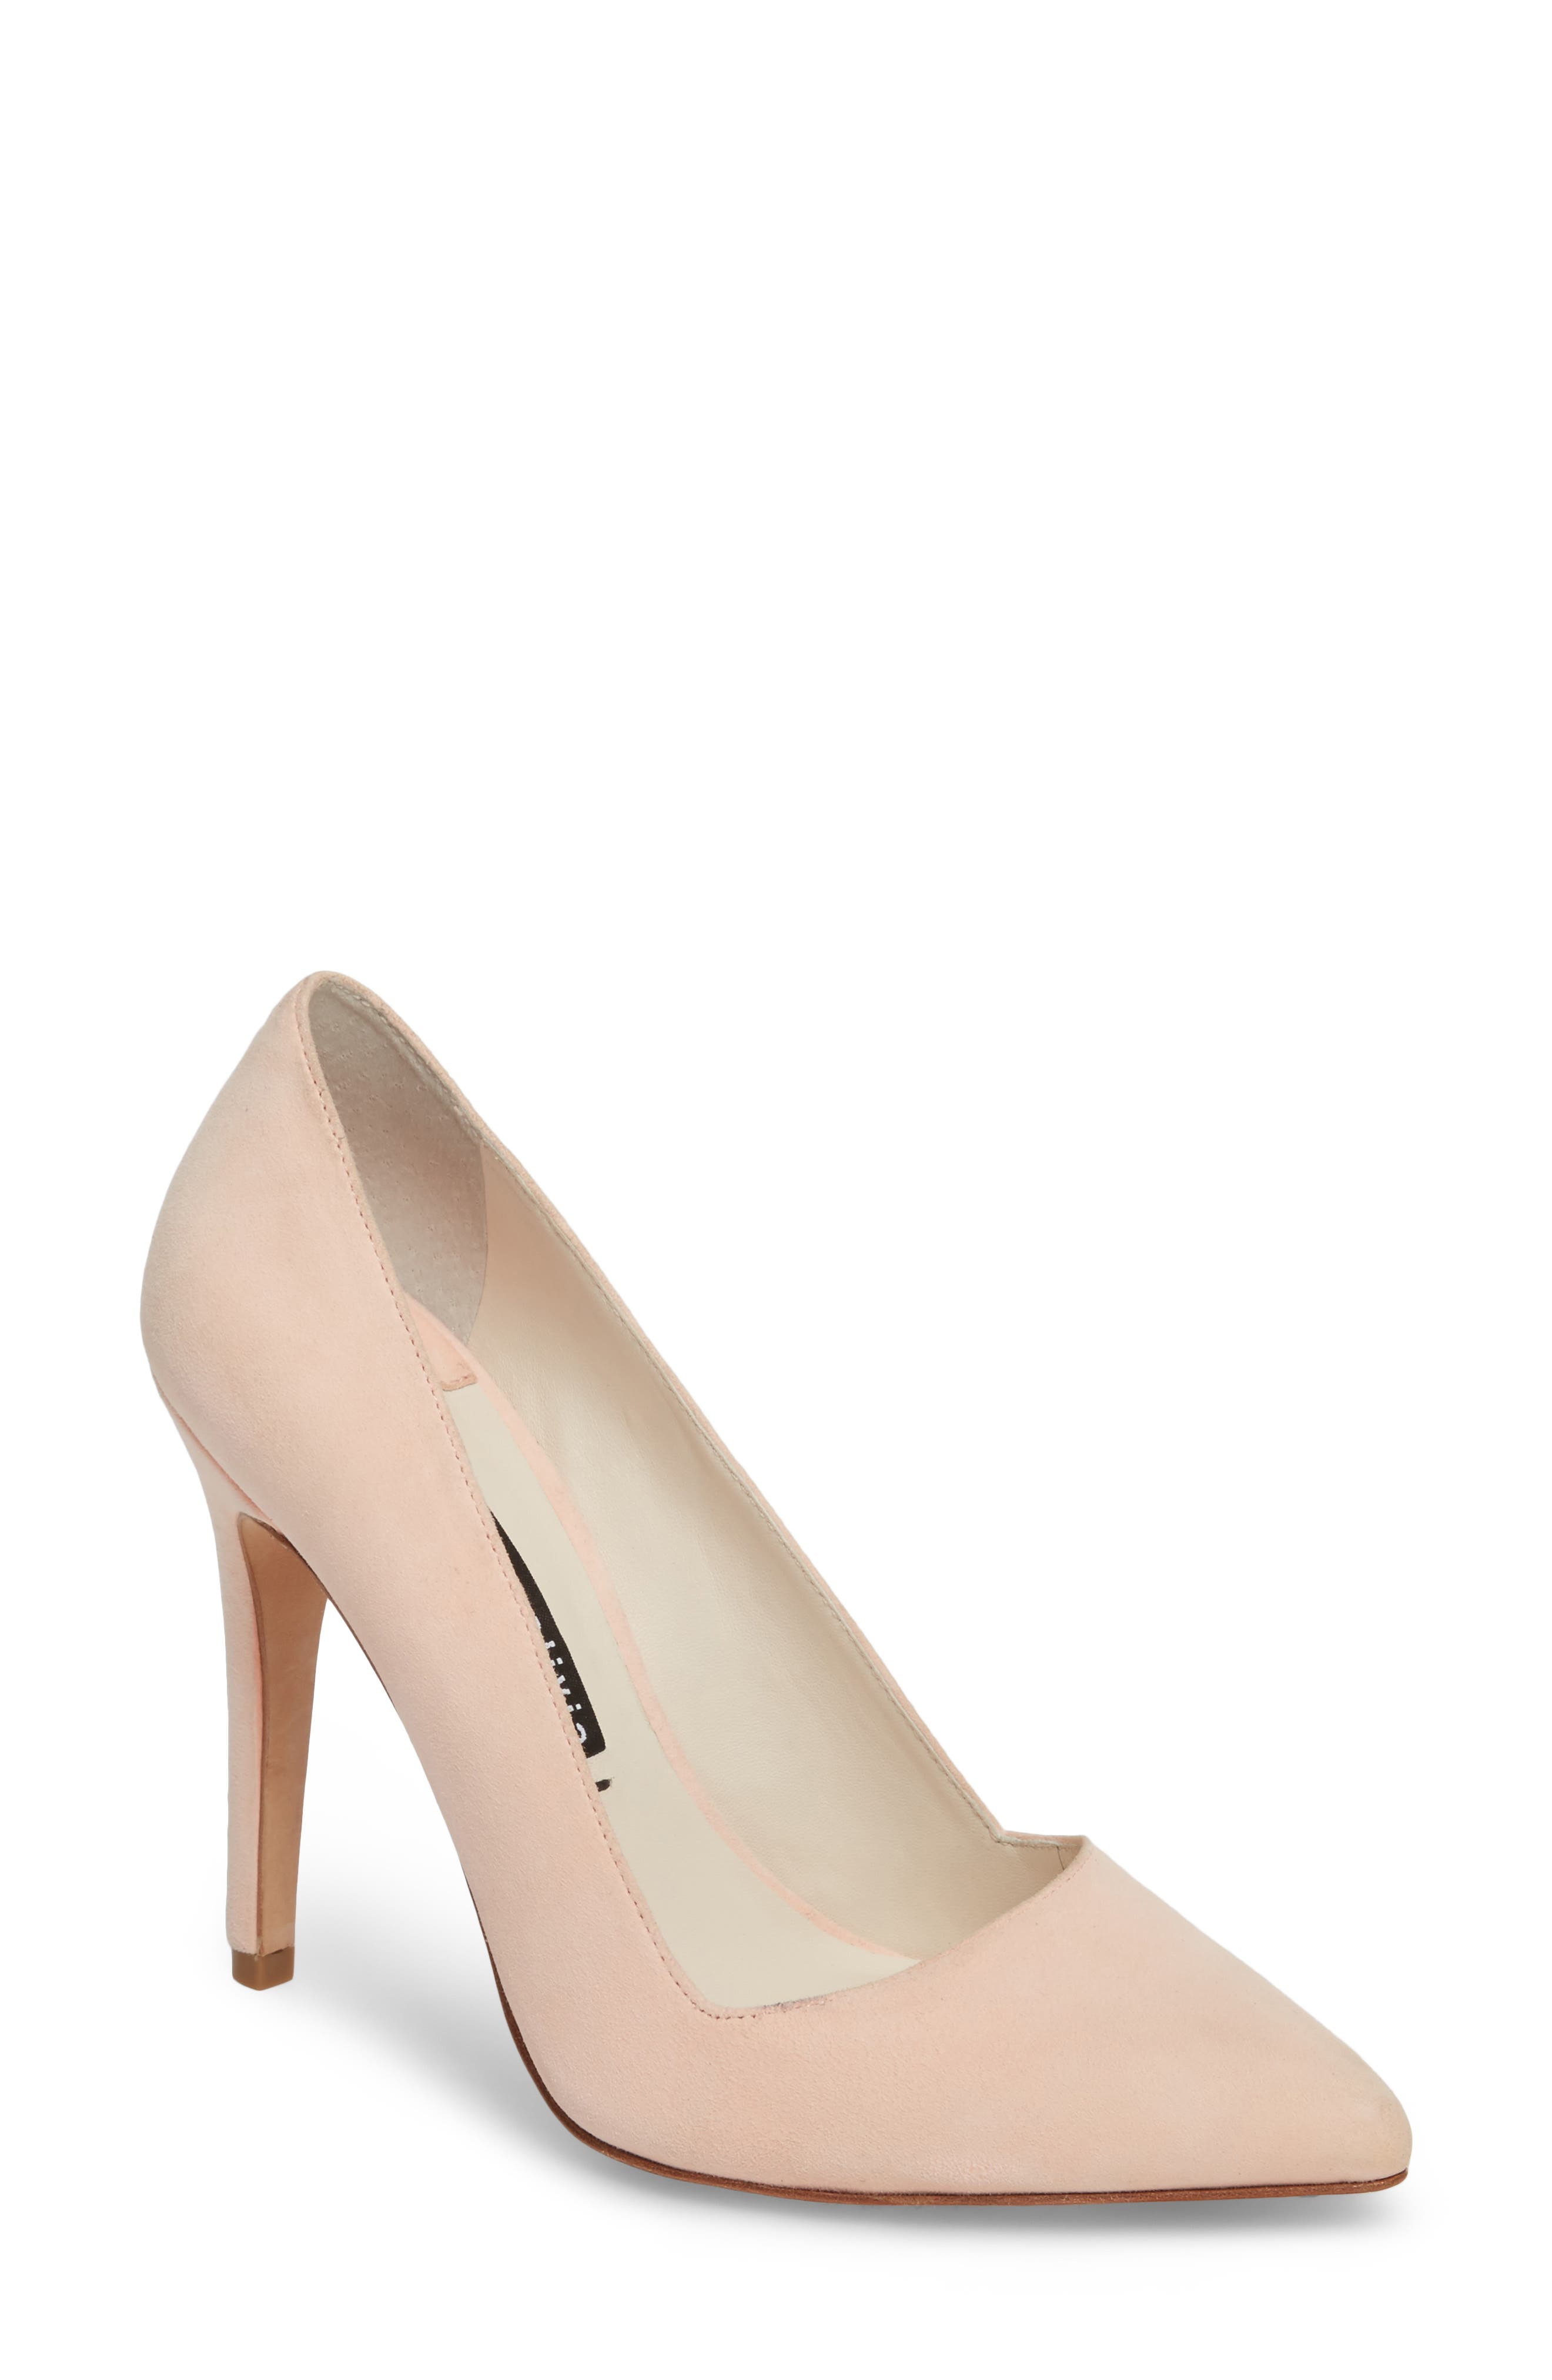 Dina 95 Whipstitch Pointy Toe Pump,                         Main,                         color, Perfect Pink Suede